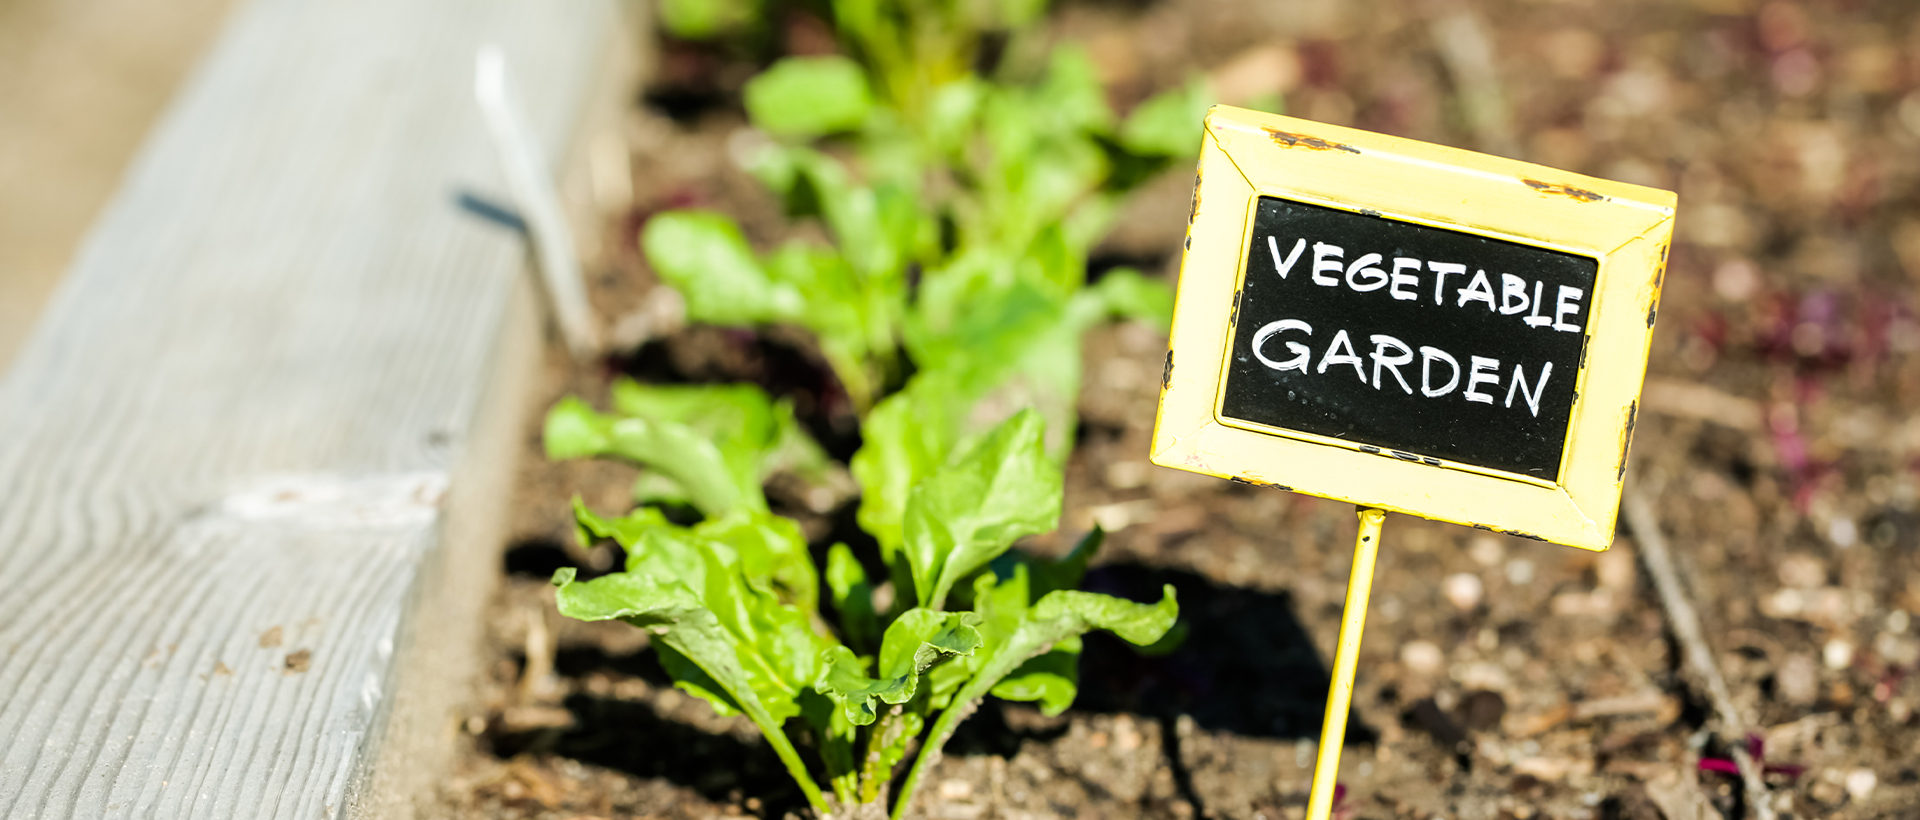 "A small rustic sign reading ""Vegetable Garden"" next to a row of planted vegetables in a garden."